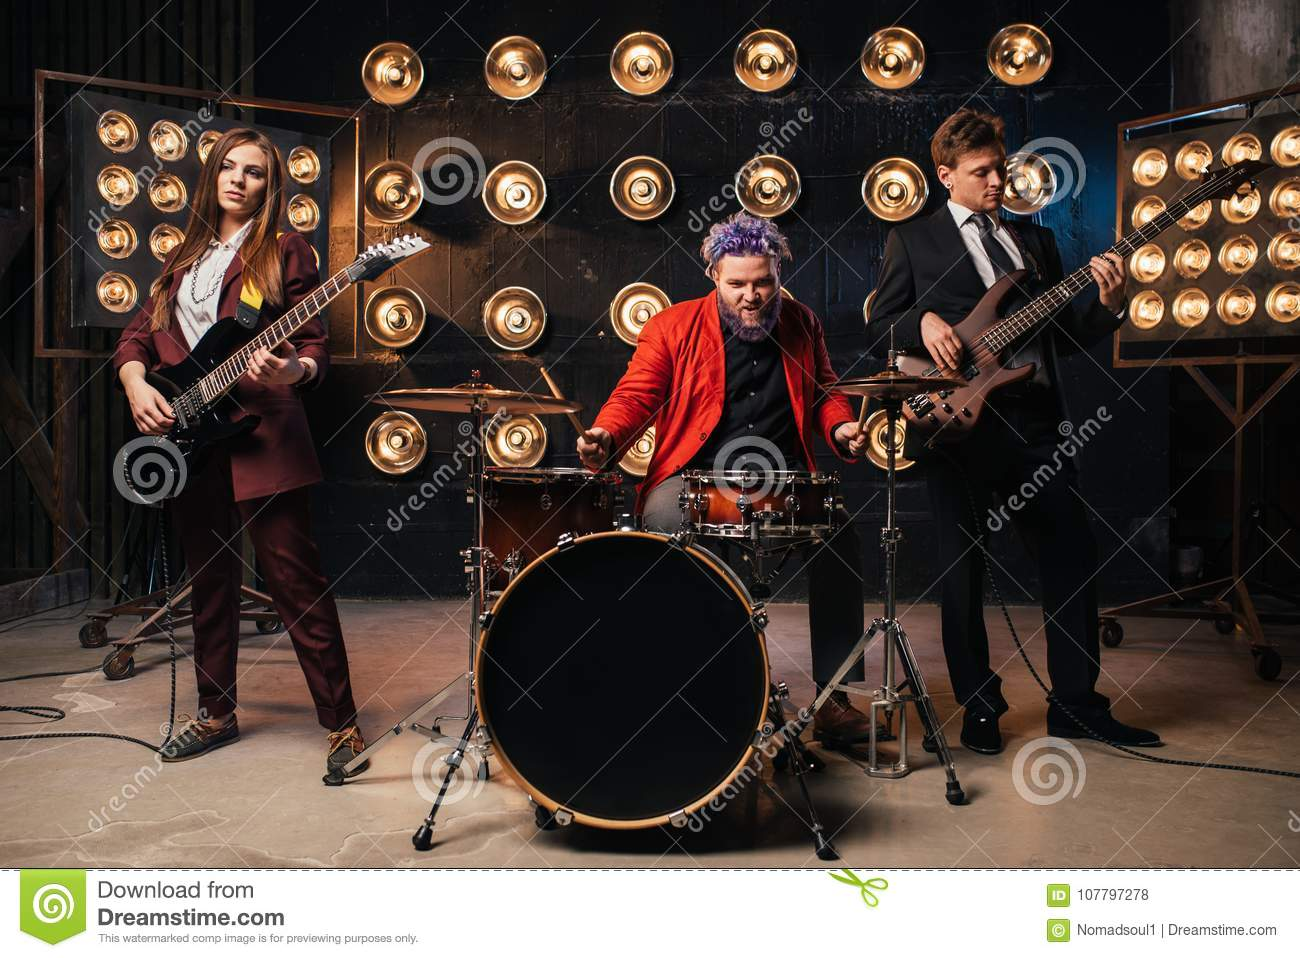 Musicians In Suits On The Stage, Retro Style Stock Photo